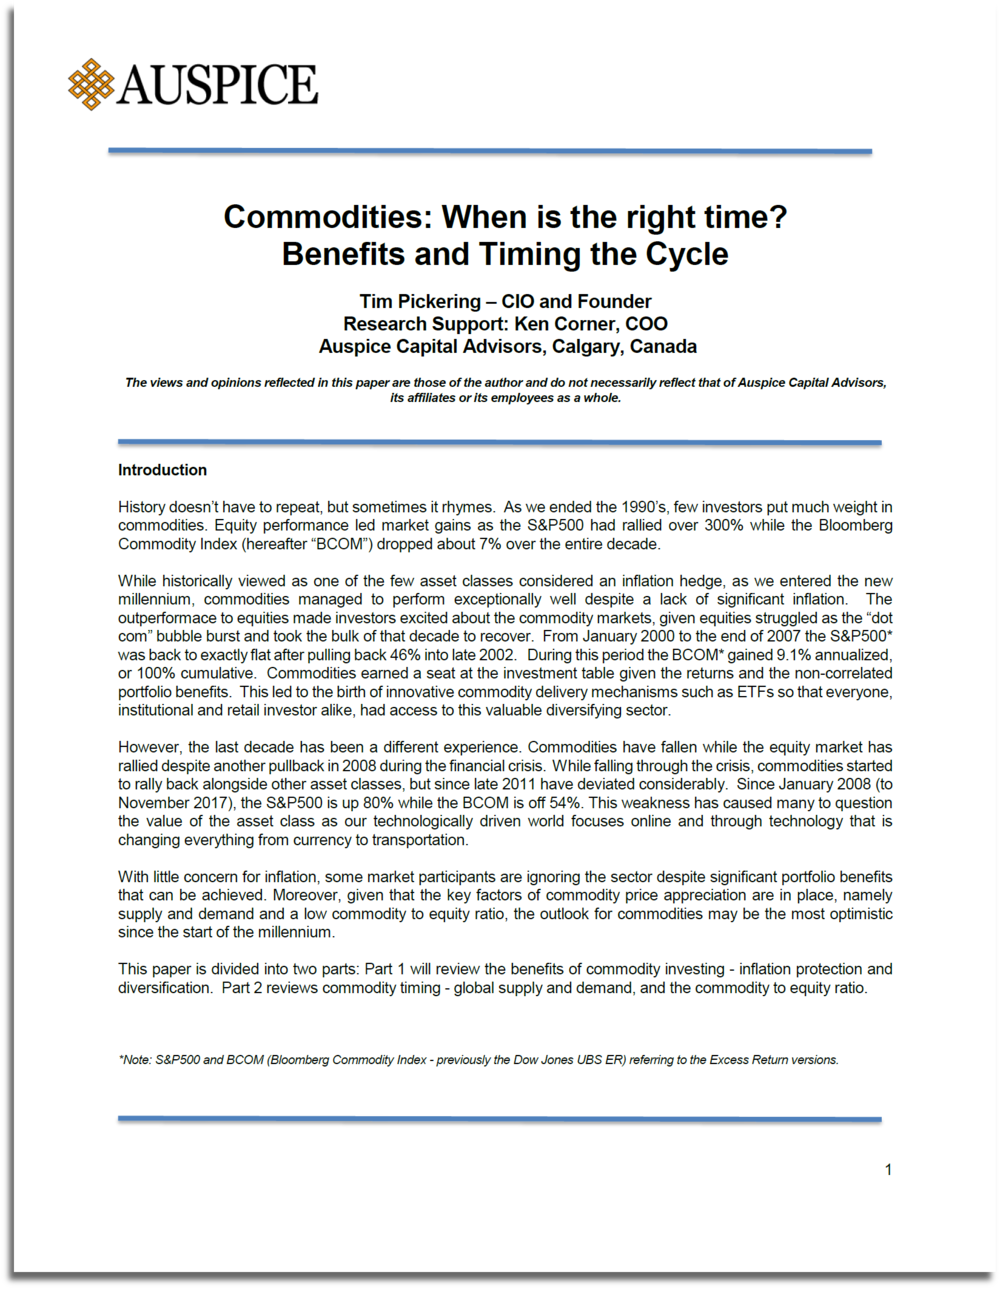 Commodities: When is the right time? Benefits and Timing the Cycle